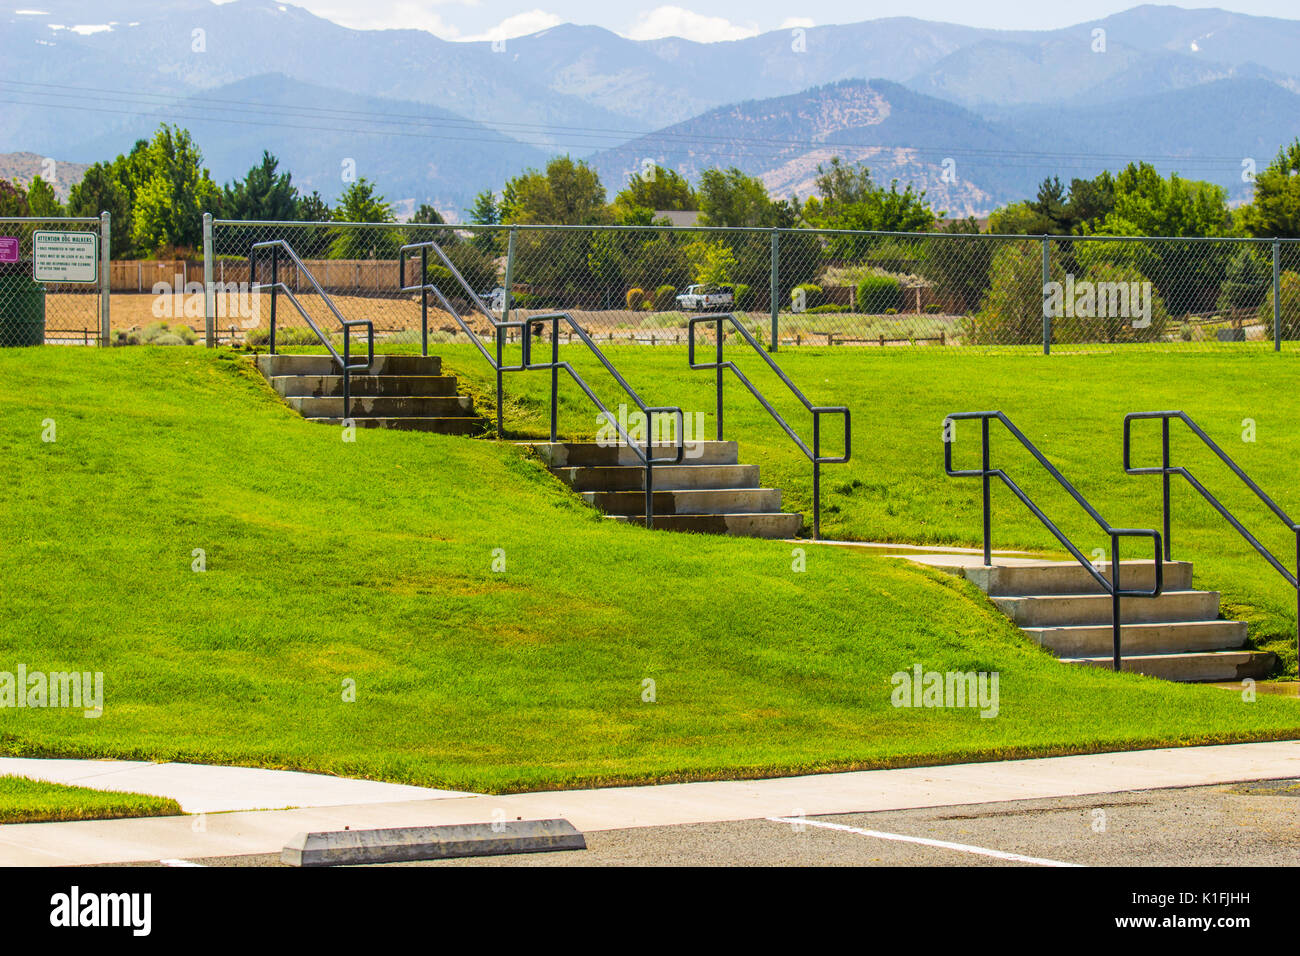 Steps With Handrails Leading To Playing Field - Stock Image